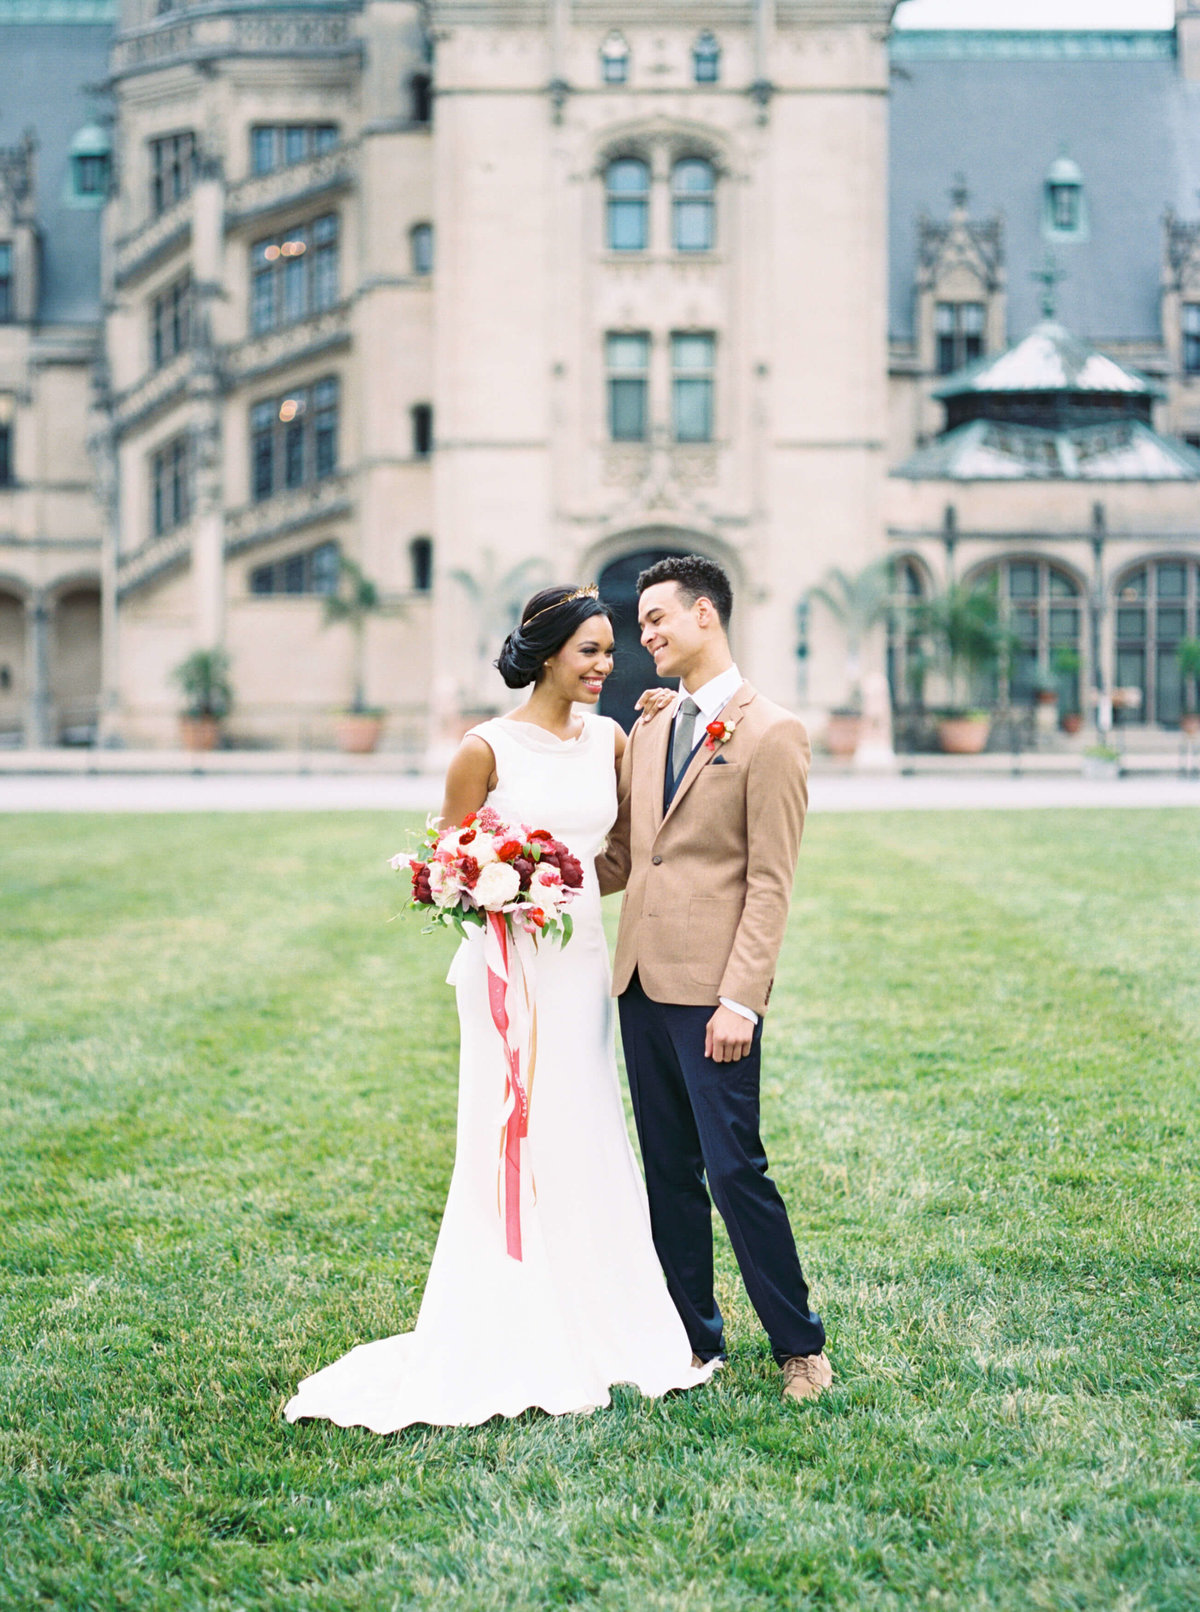 Biltmore Estate wedding photographer, Asheville Wedding Photographer, Henry Photography-43